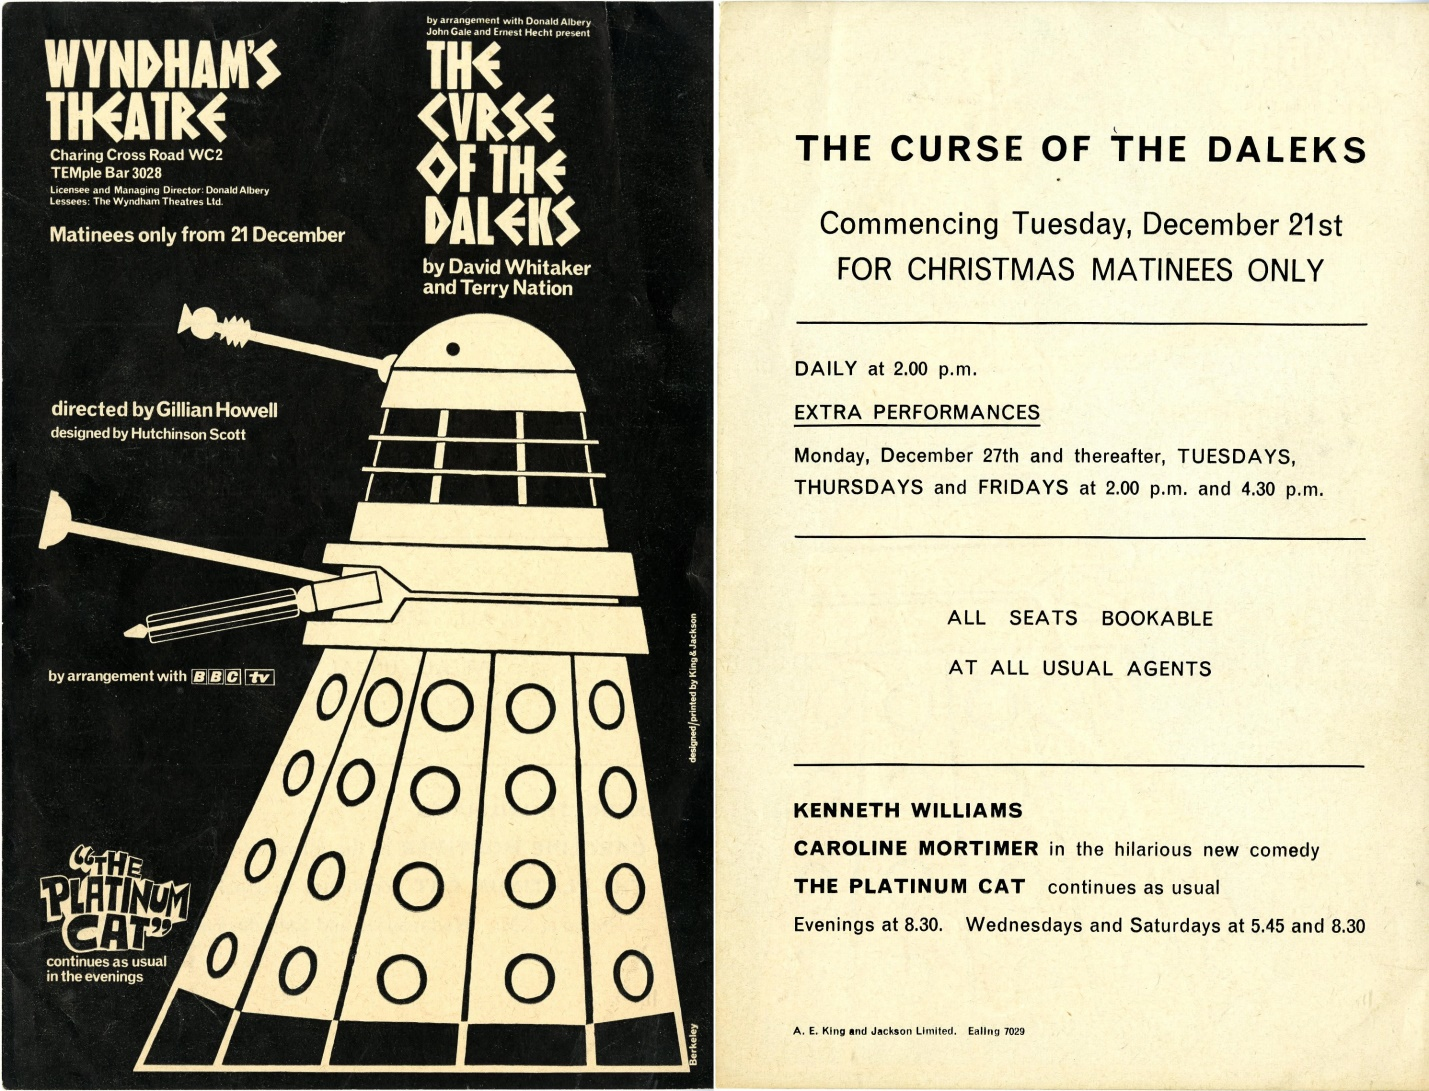 Curse of the Daleks handbill (front and back)